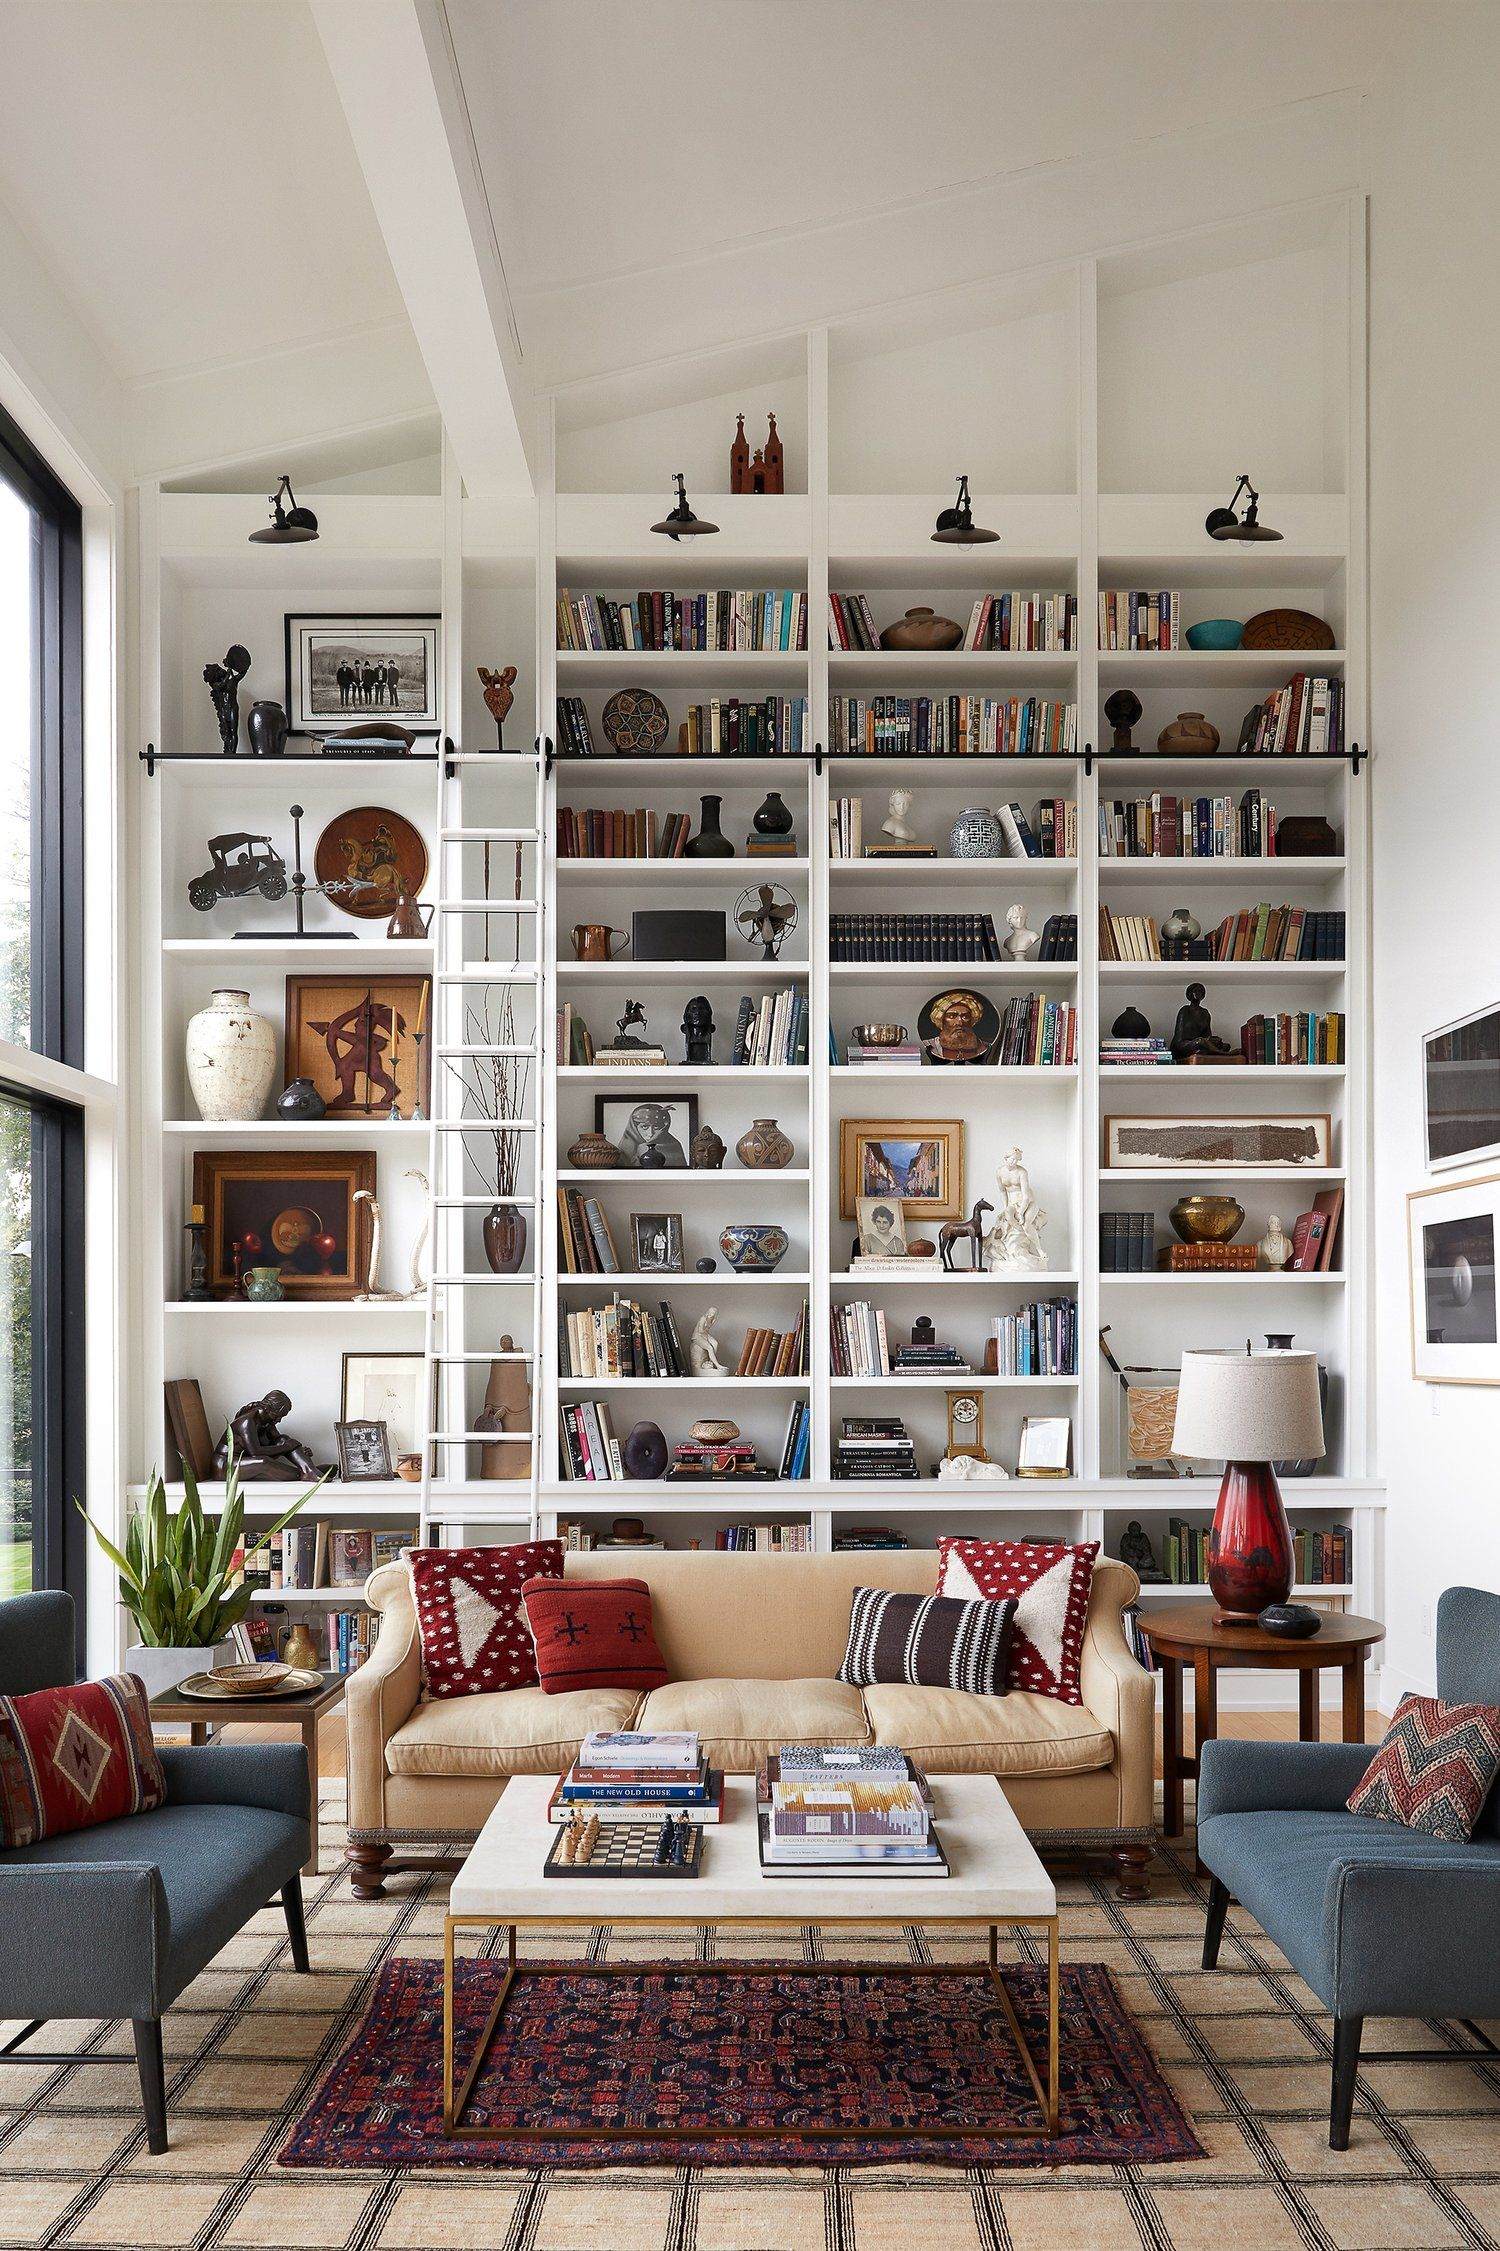 The Home Library Of Your Dreams In 2020 Bookshelves Built In Built In Shelves Living Room High Ceiling Living Room